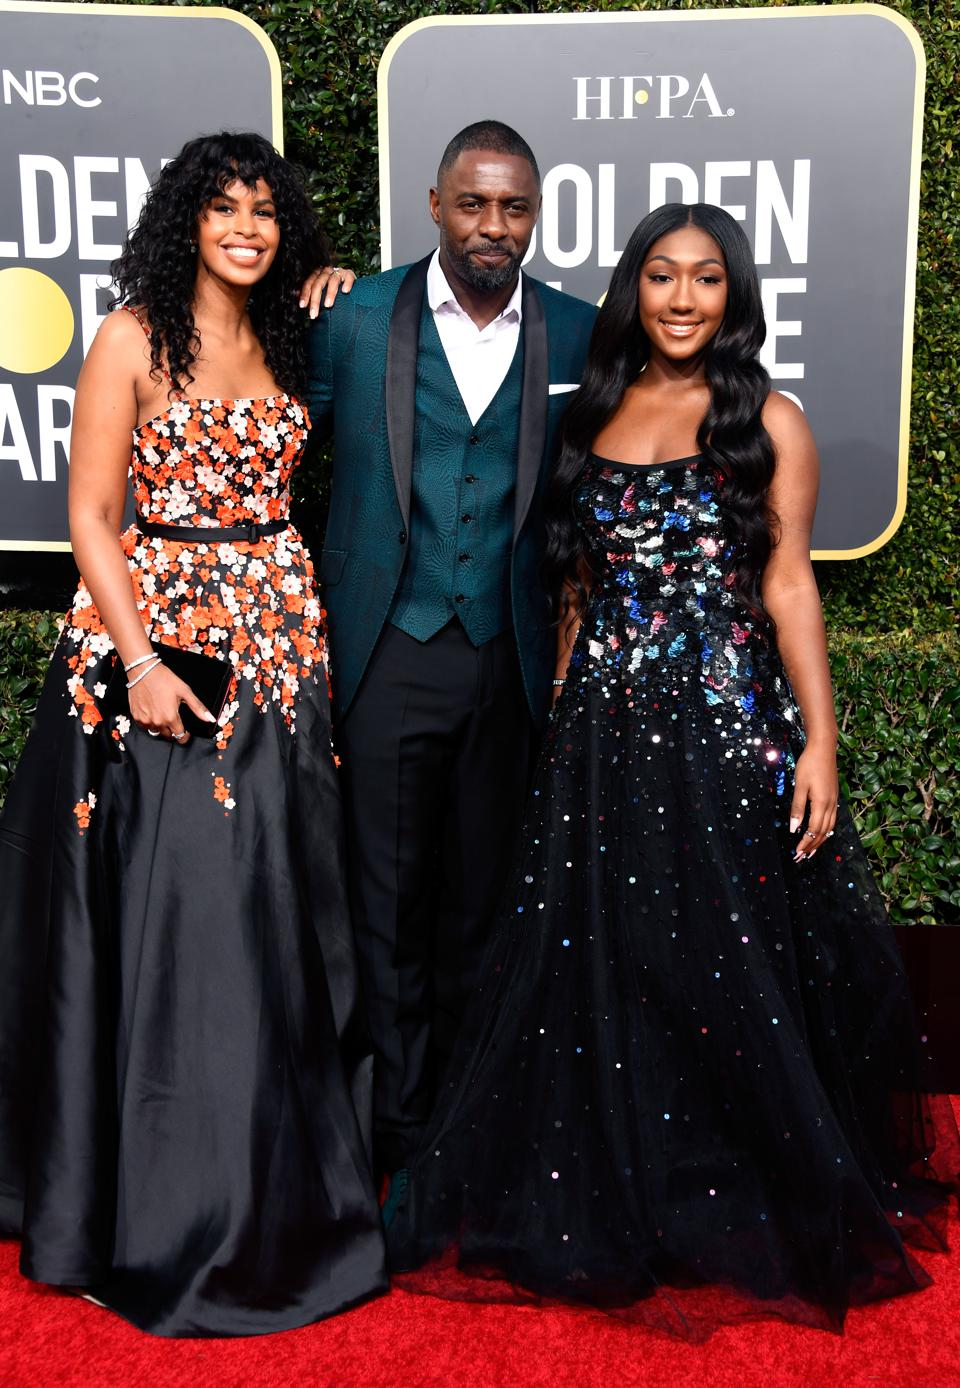 Idris Elba poses with his fiancée Sabrina Dhowre and daughter, Isan, who is this year's Golden Globes ambassador.